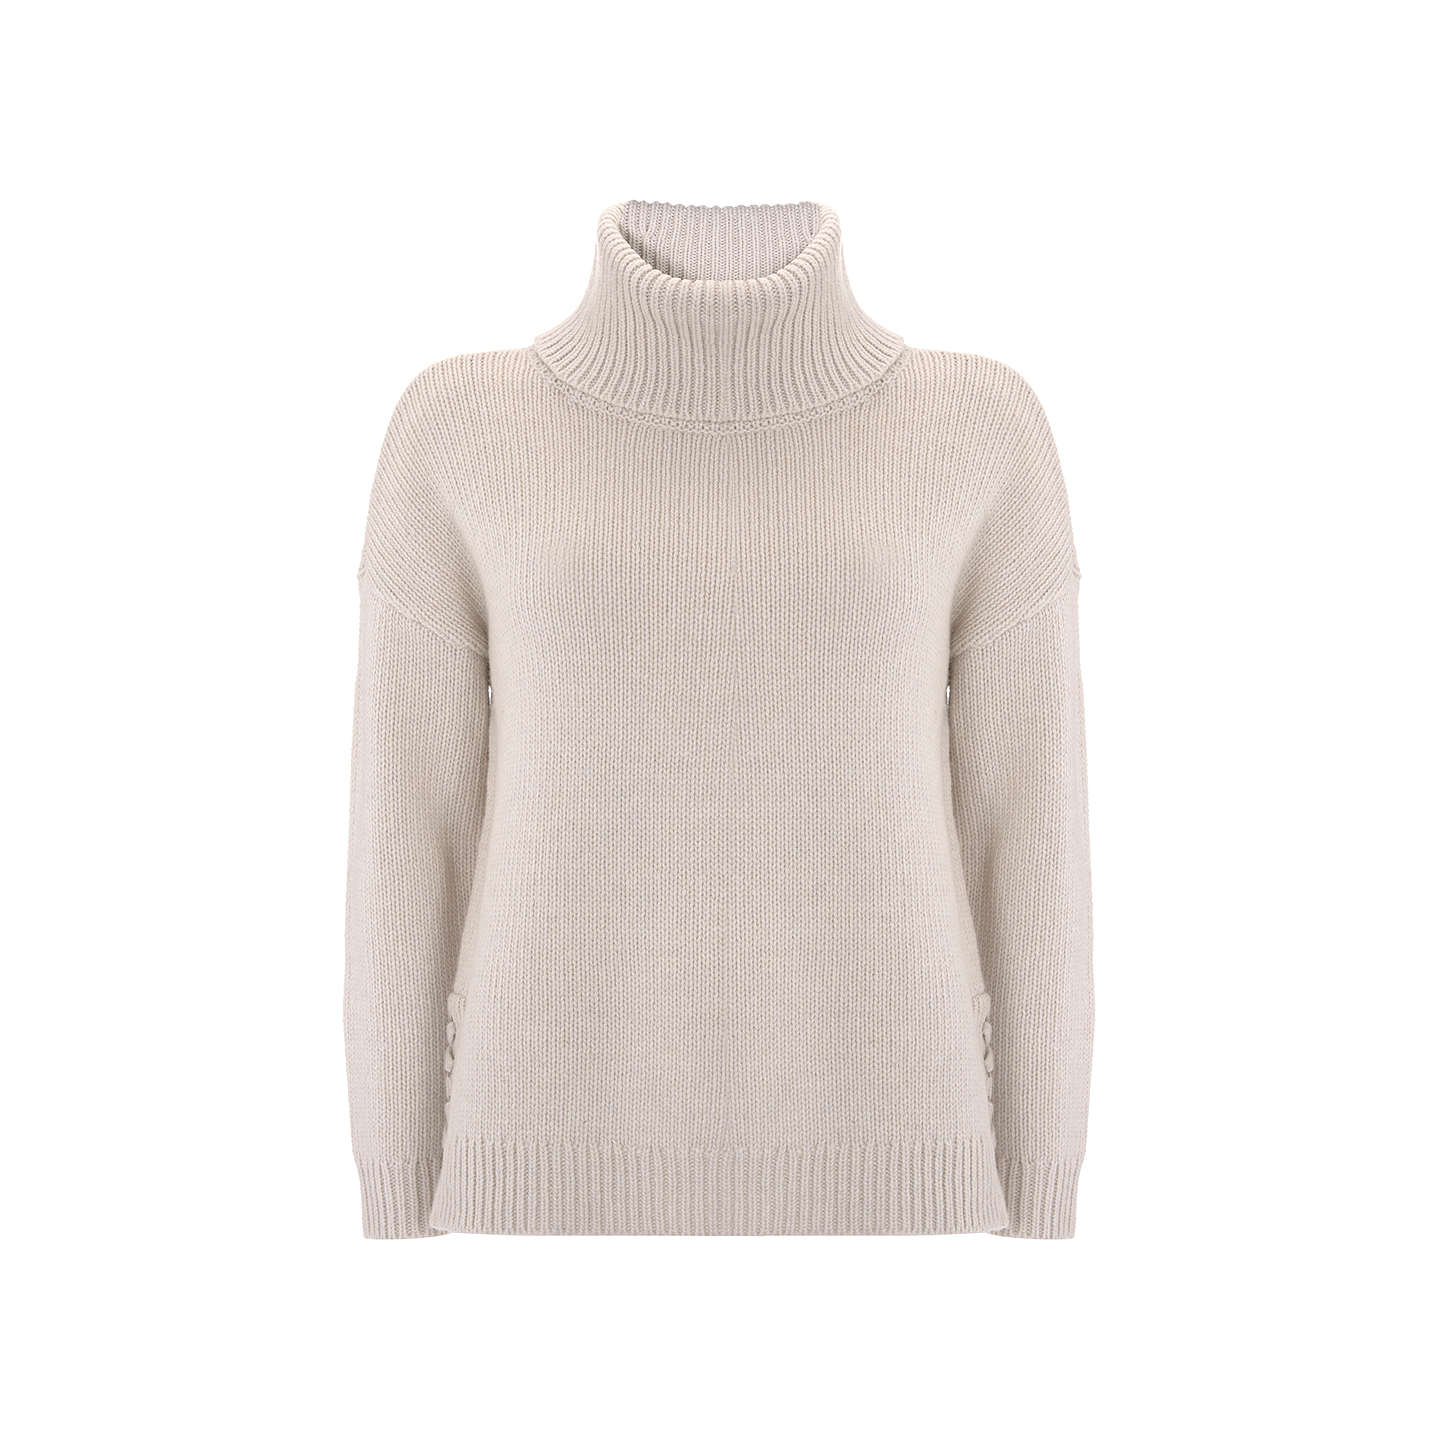 BuyMint Velvet Lace Up Cowl Neck Knit Jumper, Neutral, 8 Online at johnlewis.com